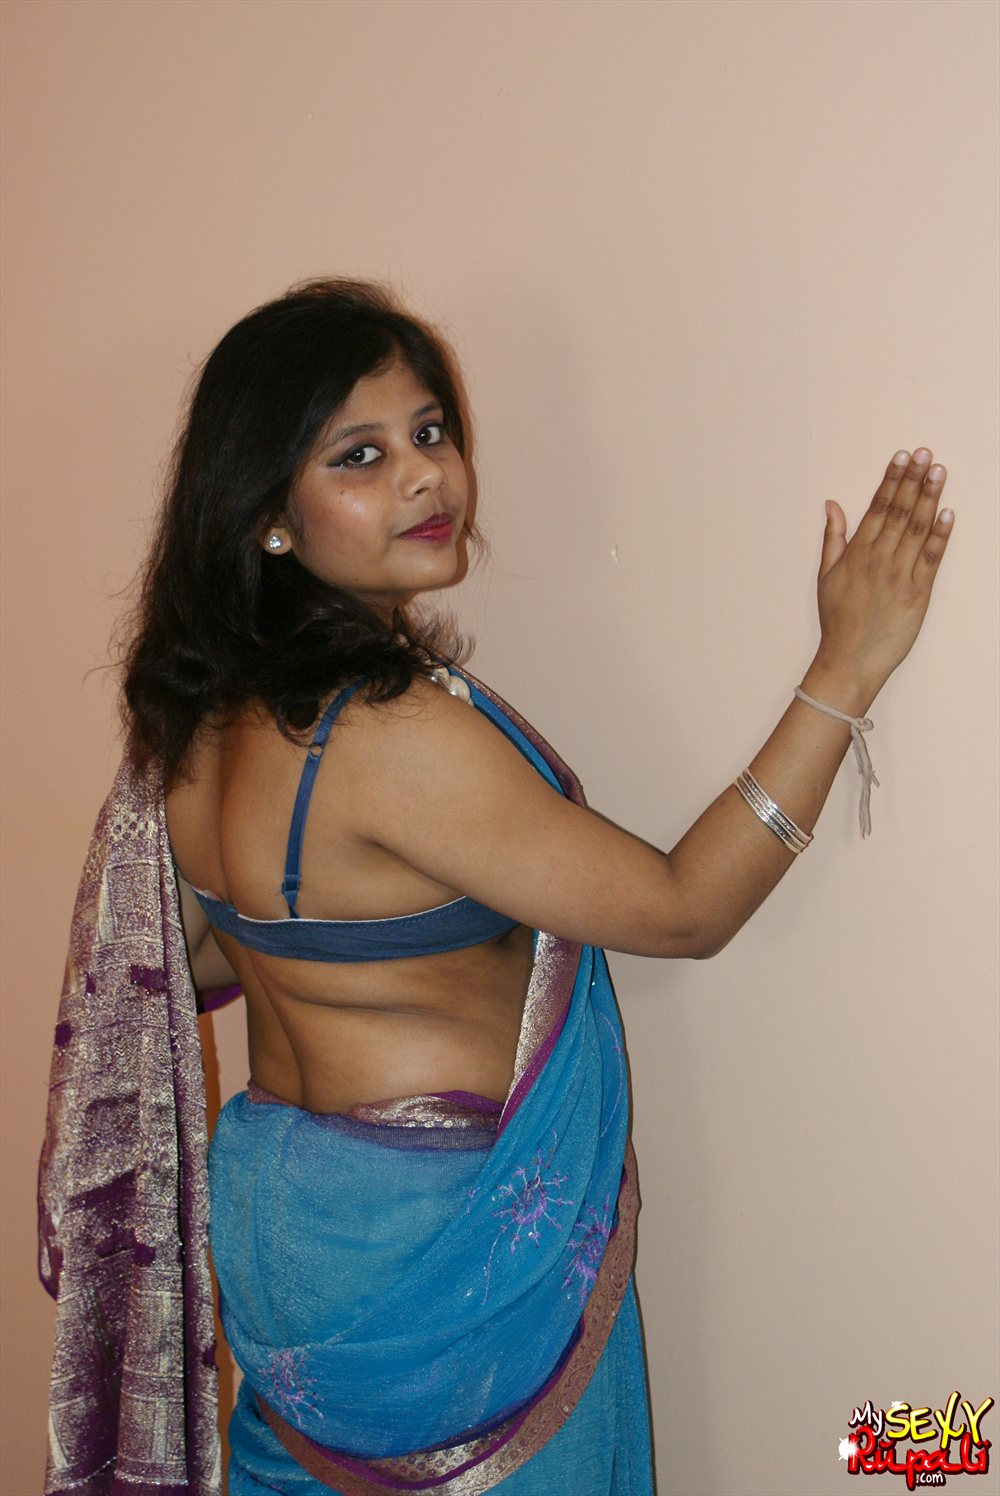 Nude sex malayalam girls photos